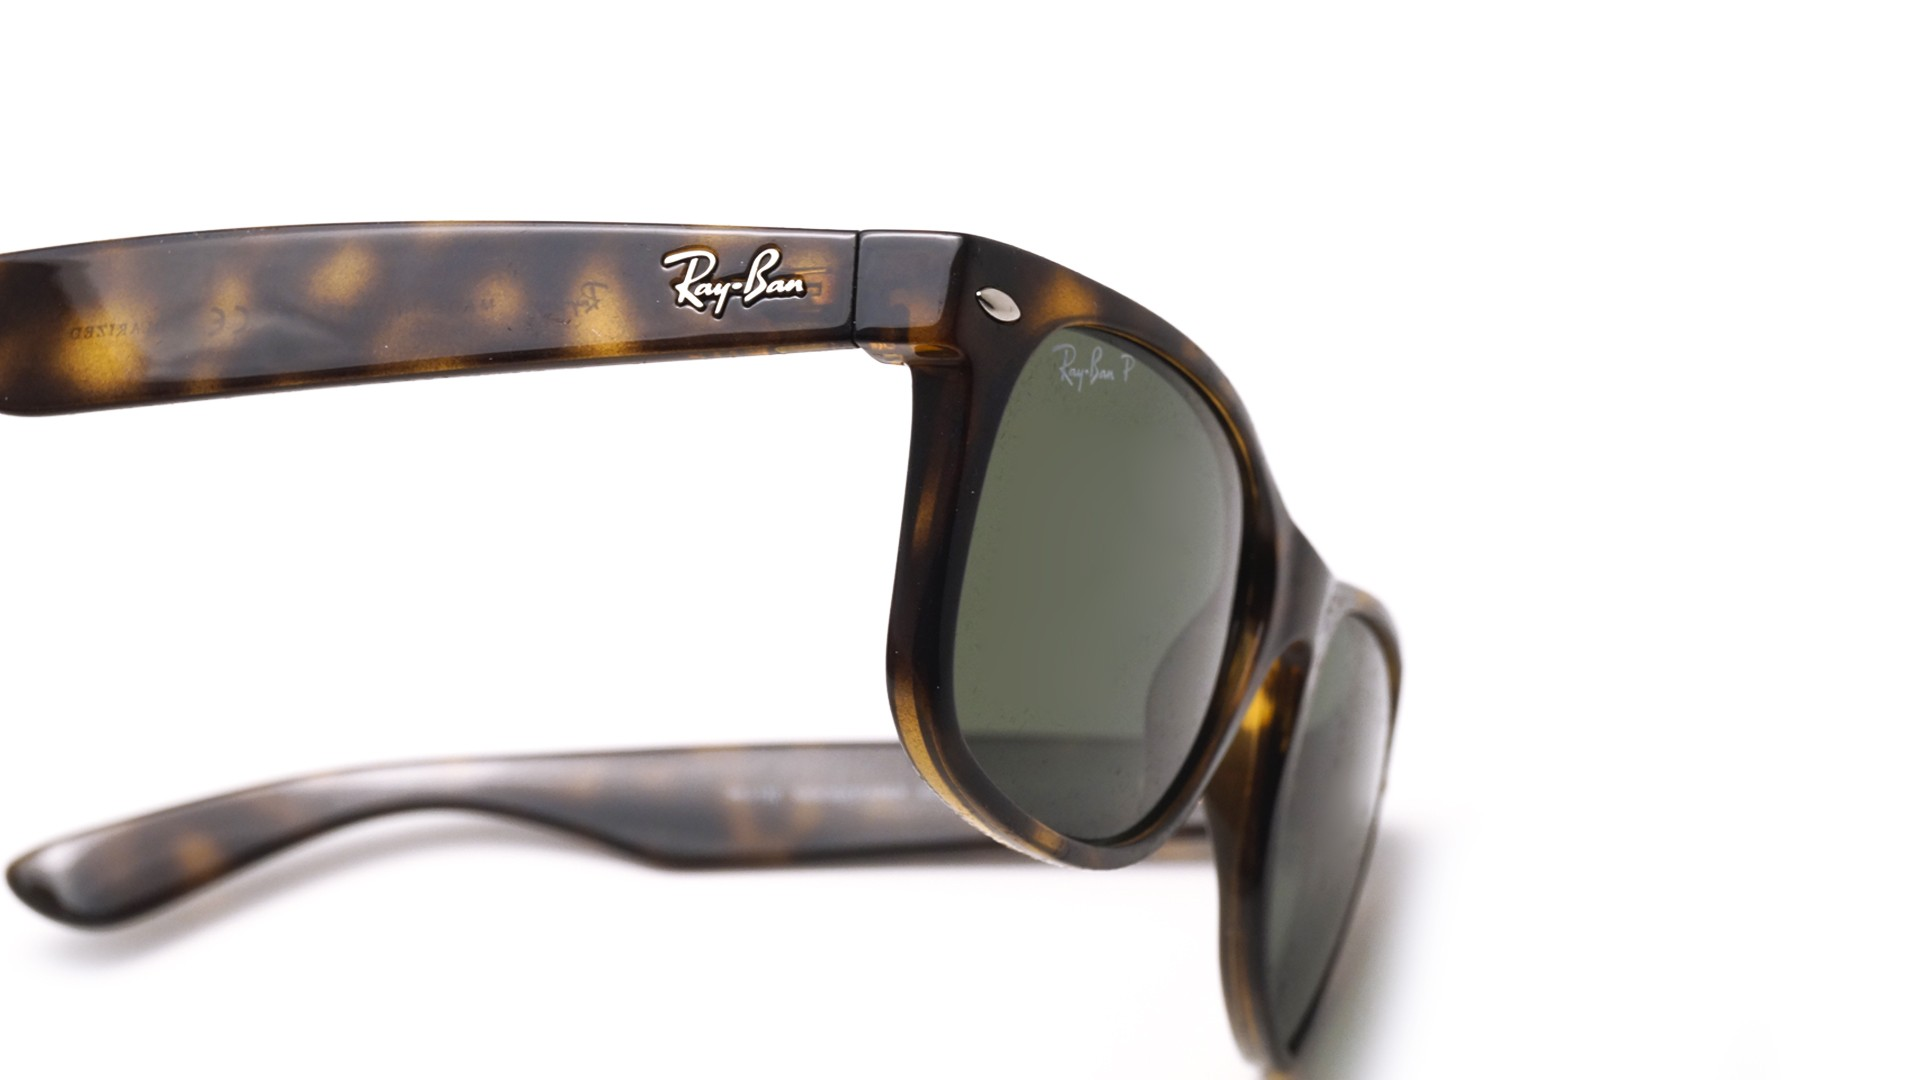 725db373d0 Sunglasses Ray-Ban New Wayfarer Tortoise RB2132 902 58 52-18 Medium  Polarized